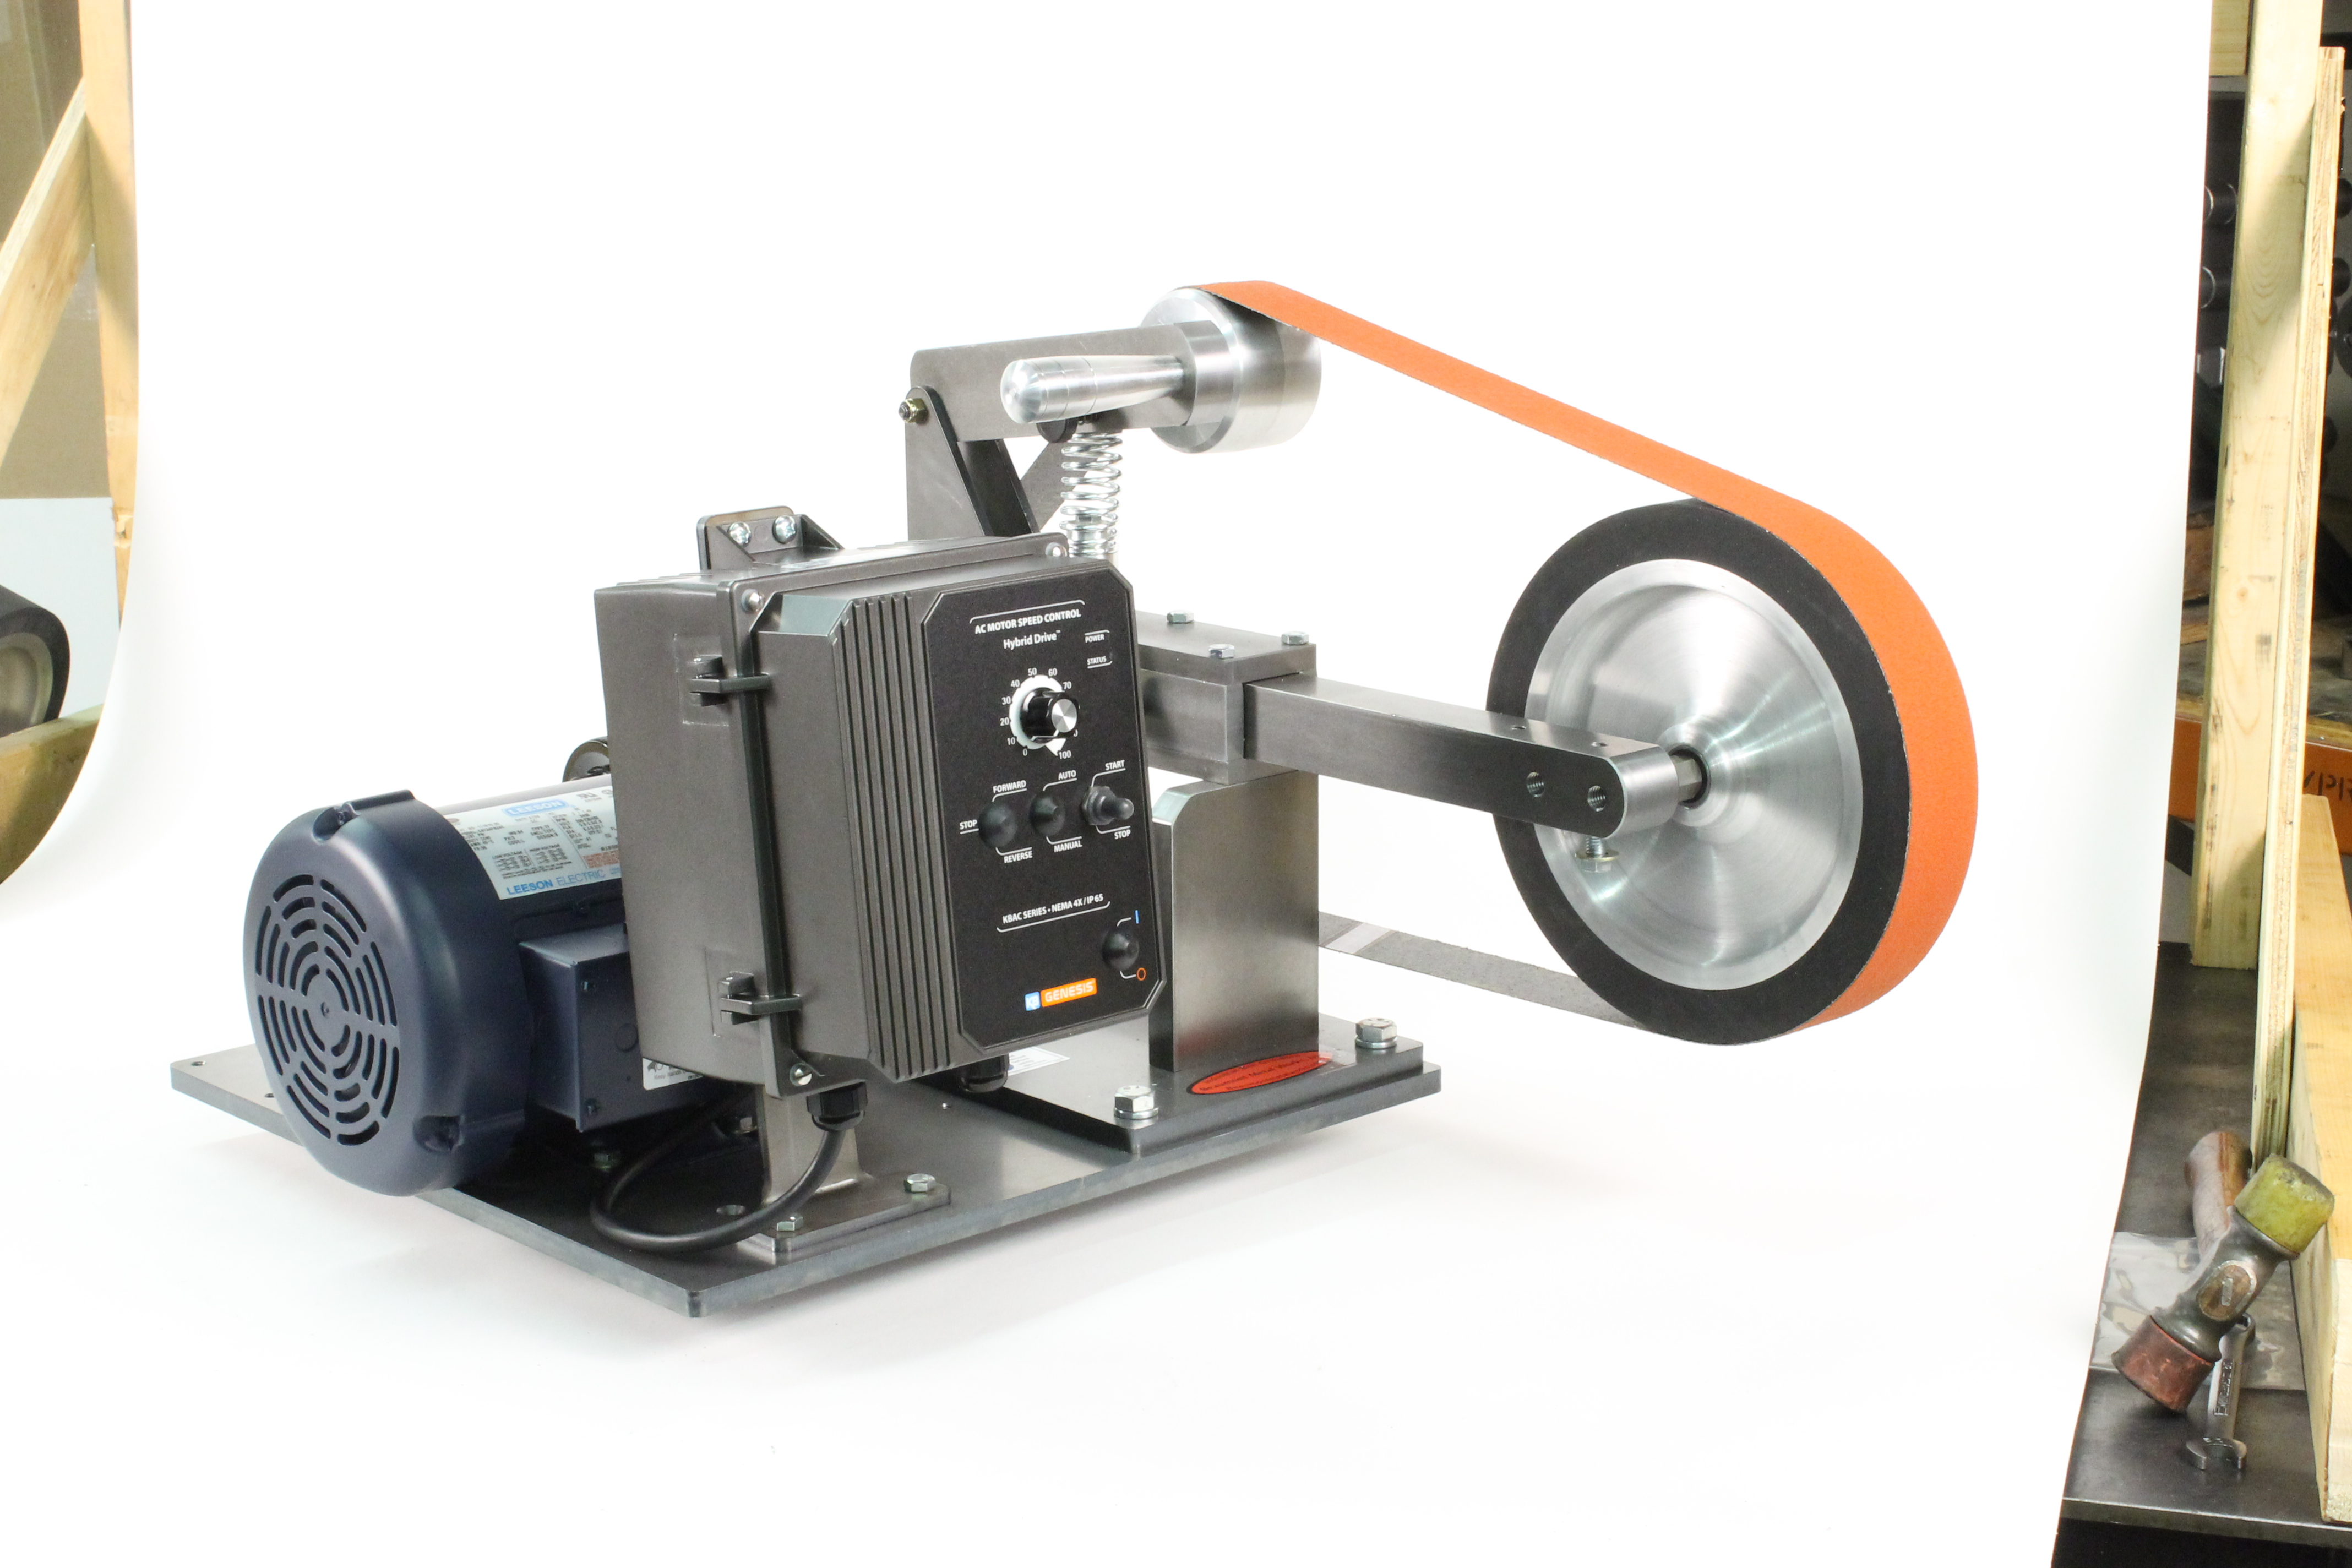 File:Belt grinder with a variable speed motor controller. .jpg - Wikimedia  Commons